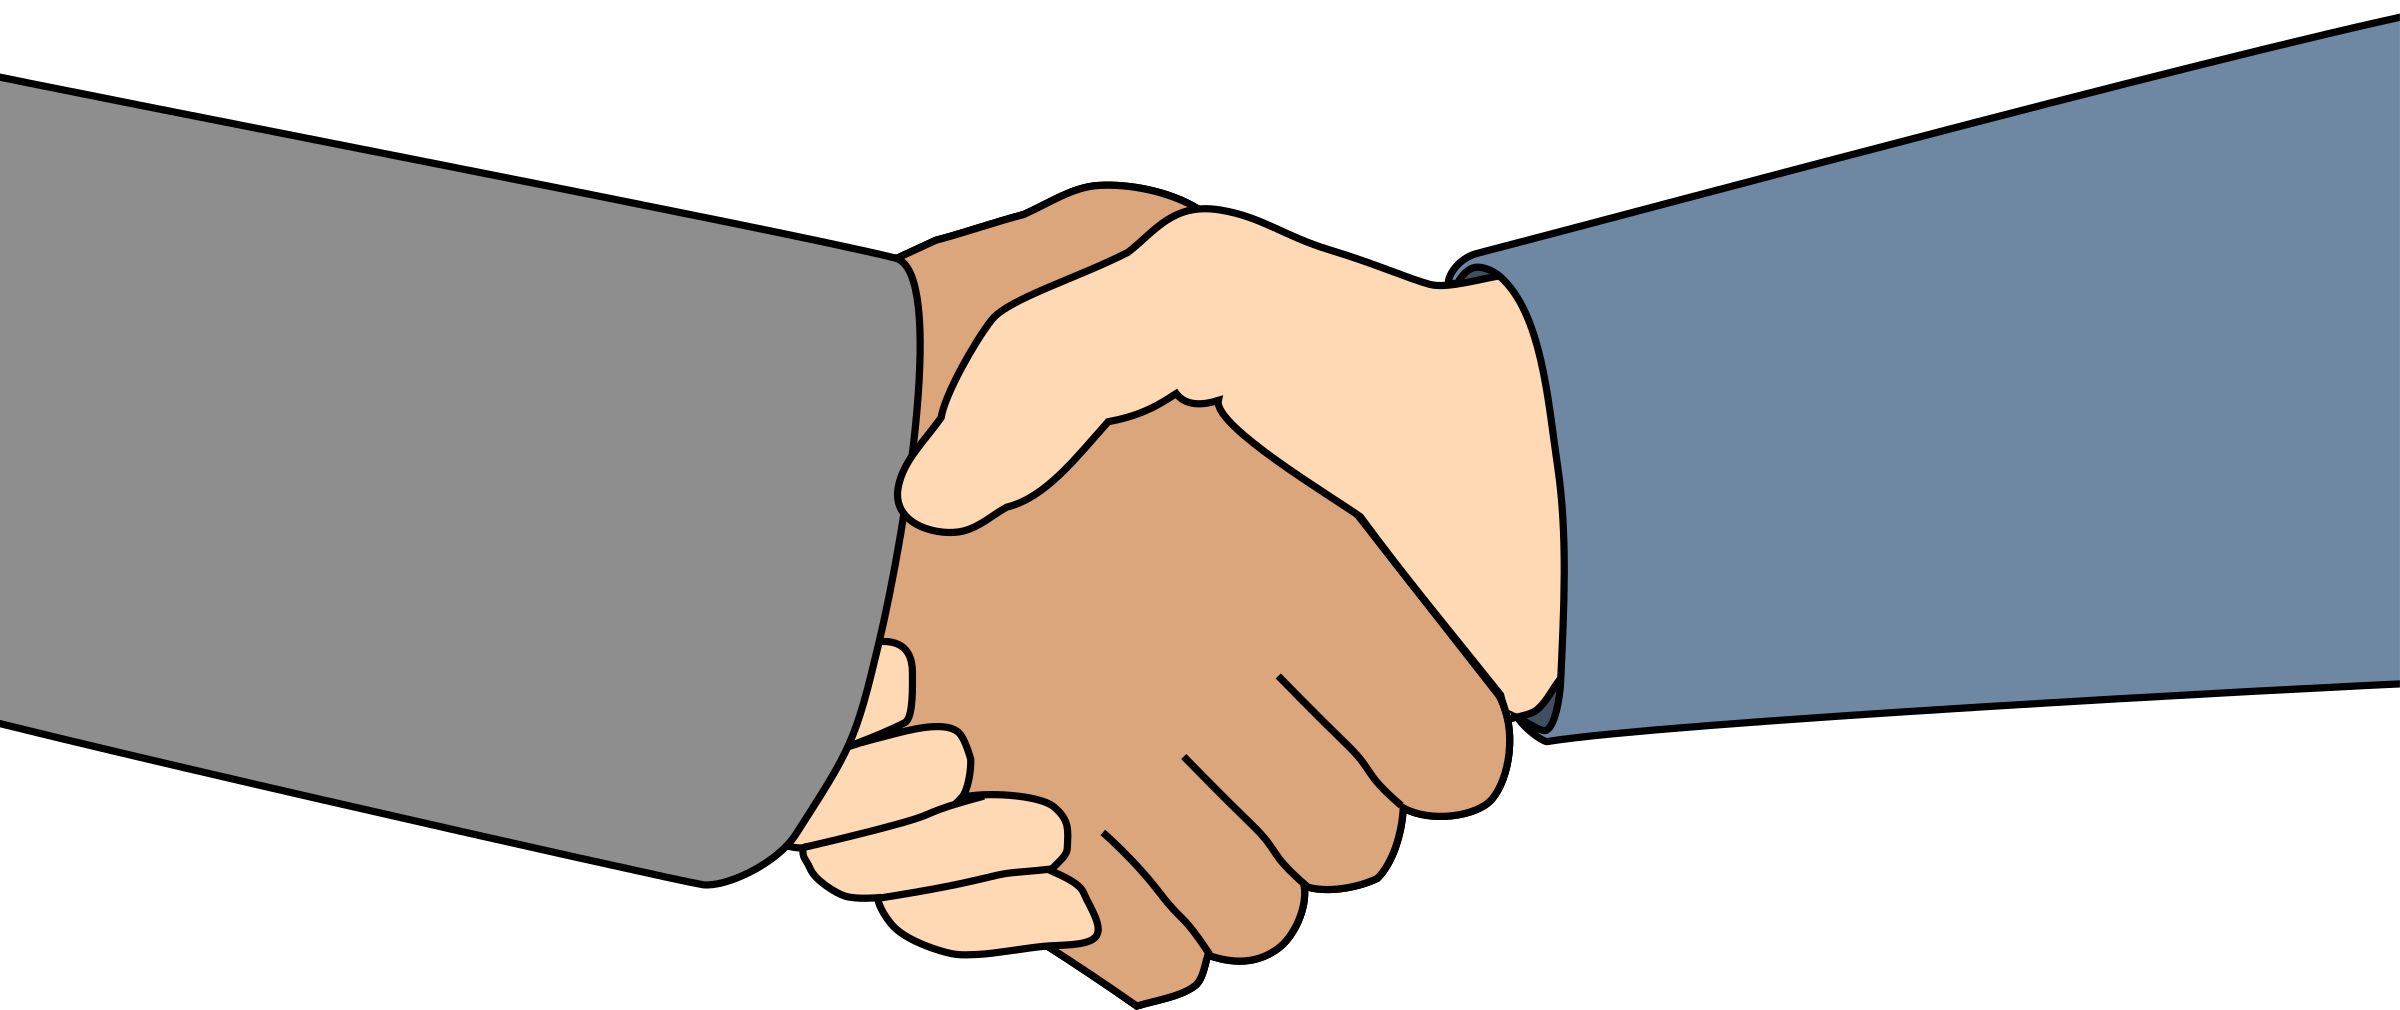 collection of high. Handshake clipart day